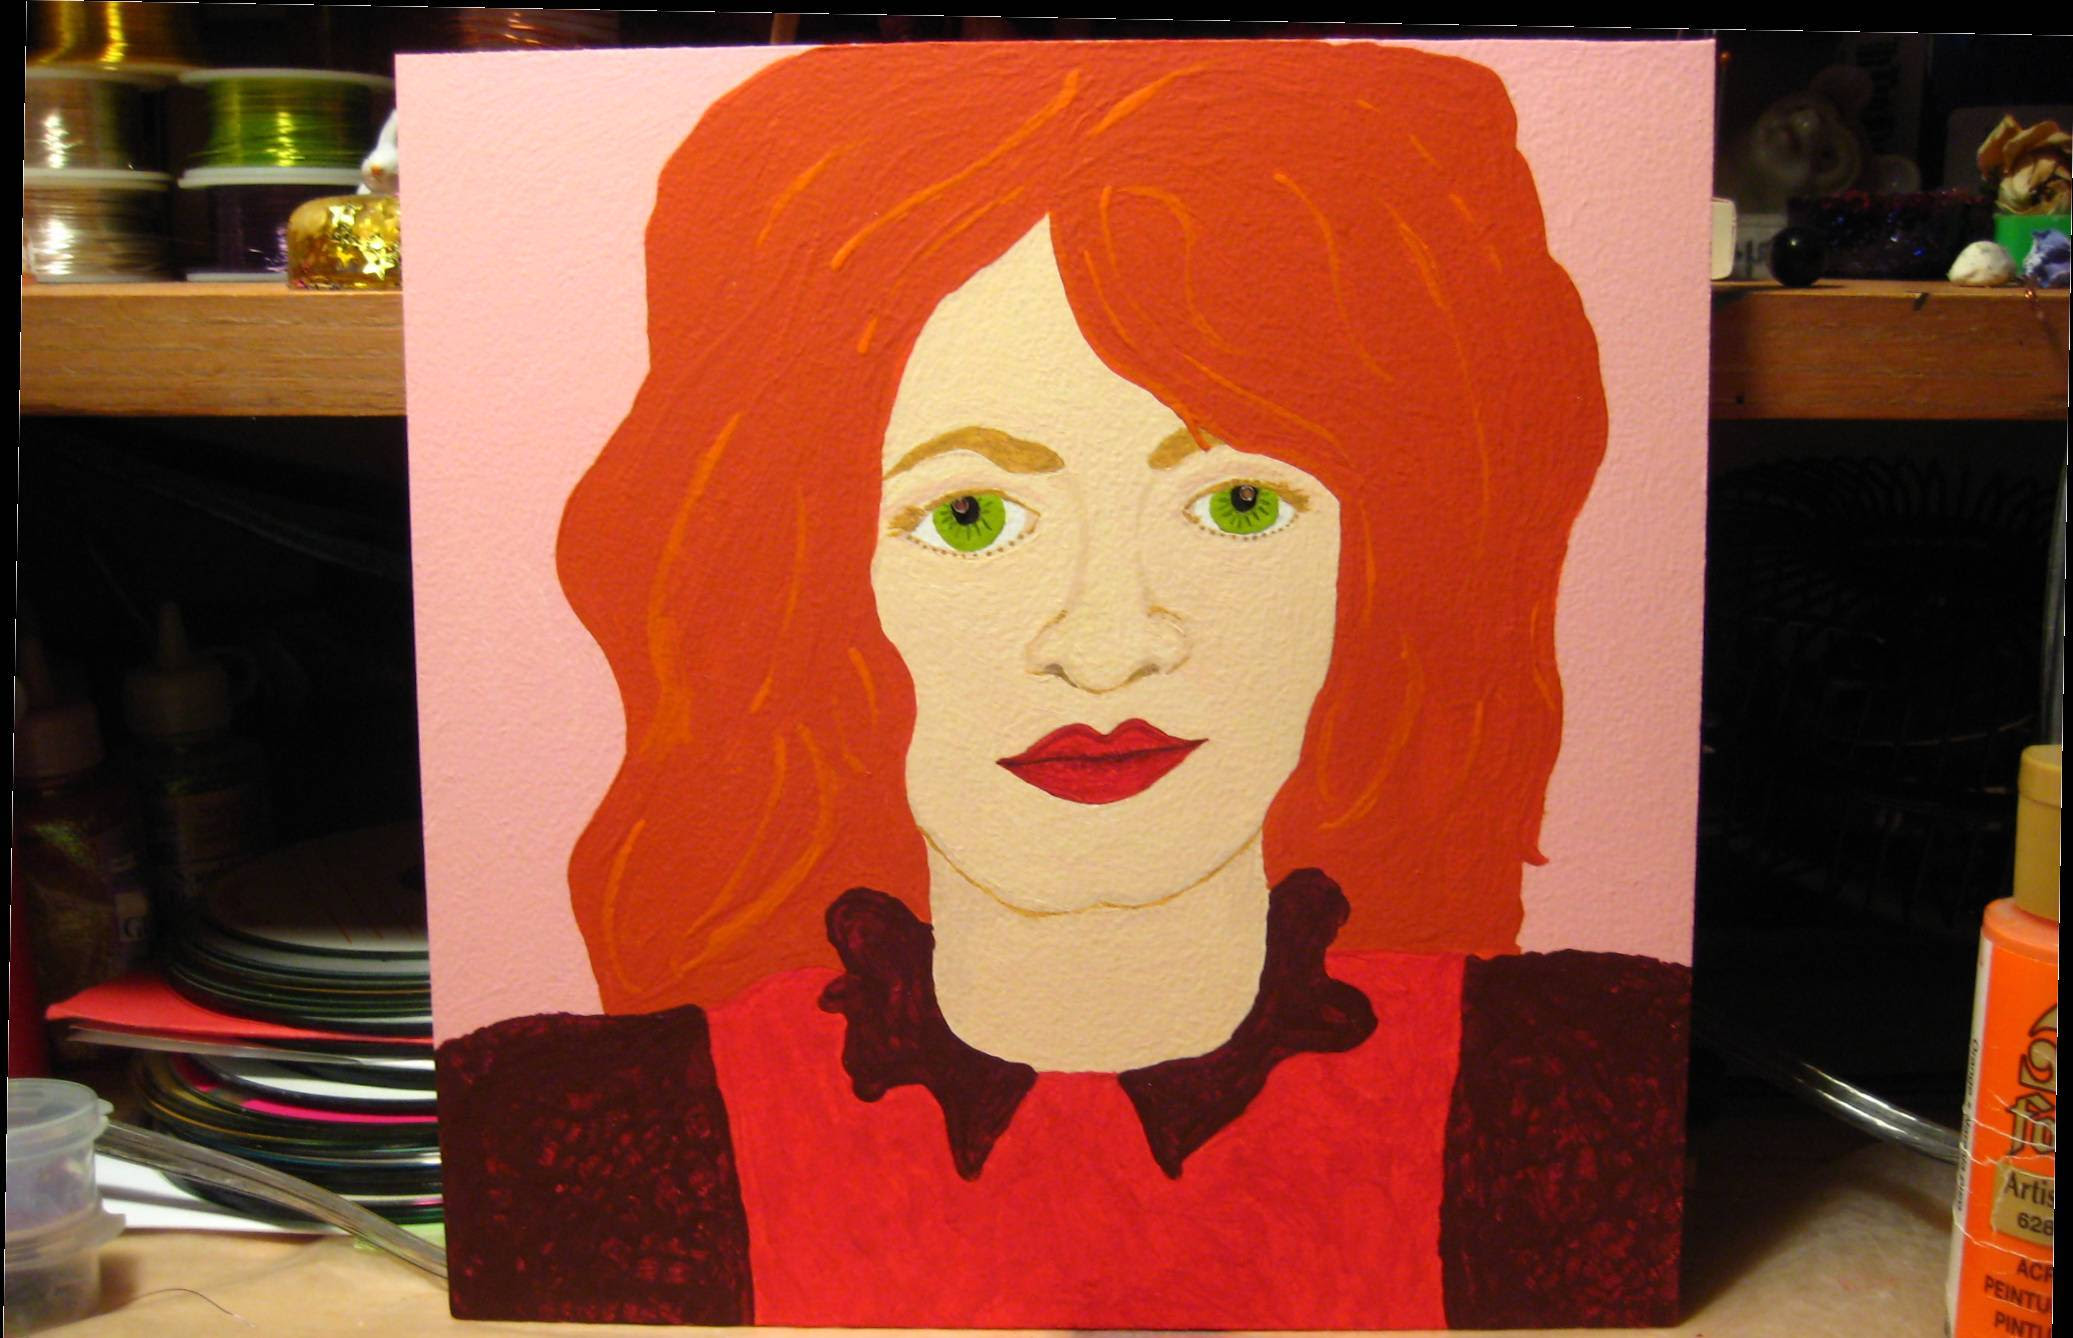 The redhead I painted this